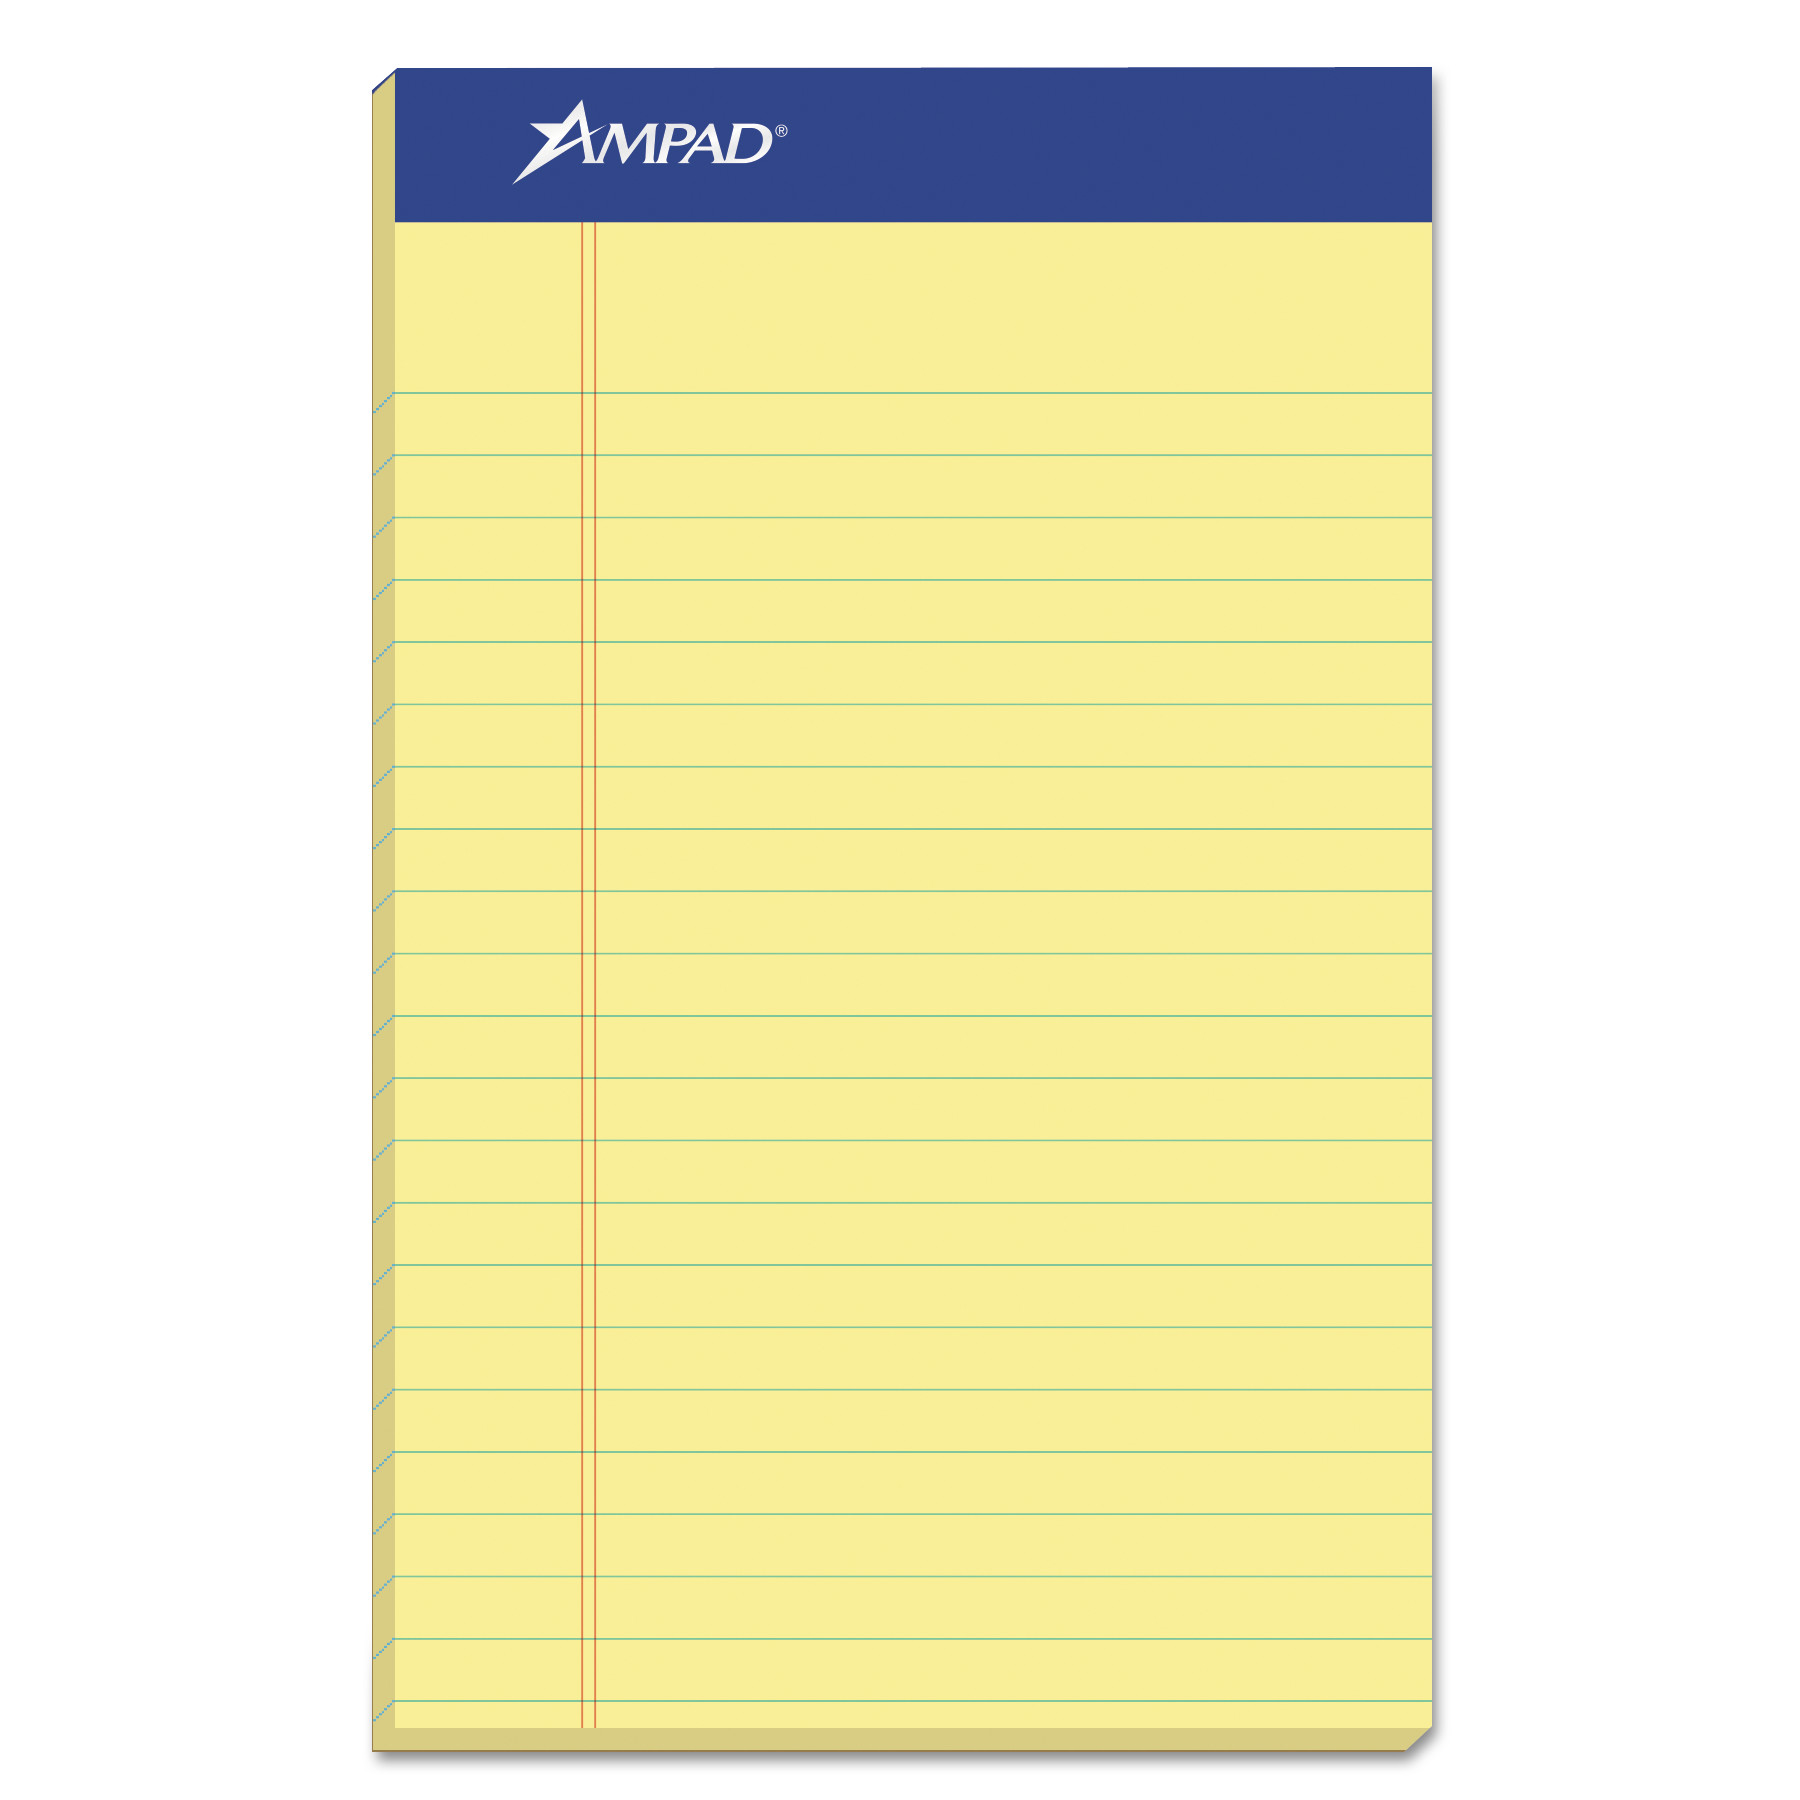 Ampad Perforated Writing Pad, Narrow, 5 x 8, Canary, 50 Sheets, Dozen -TOP20204